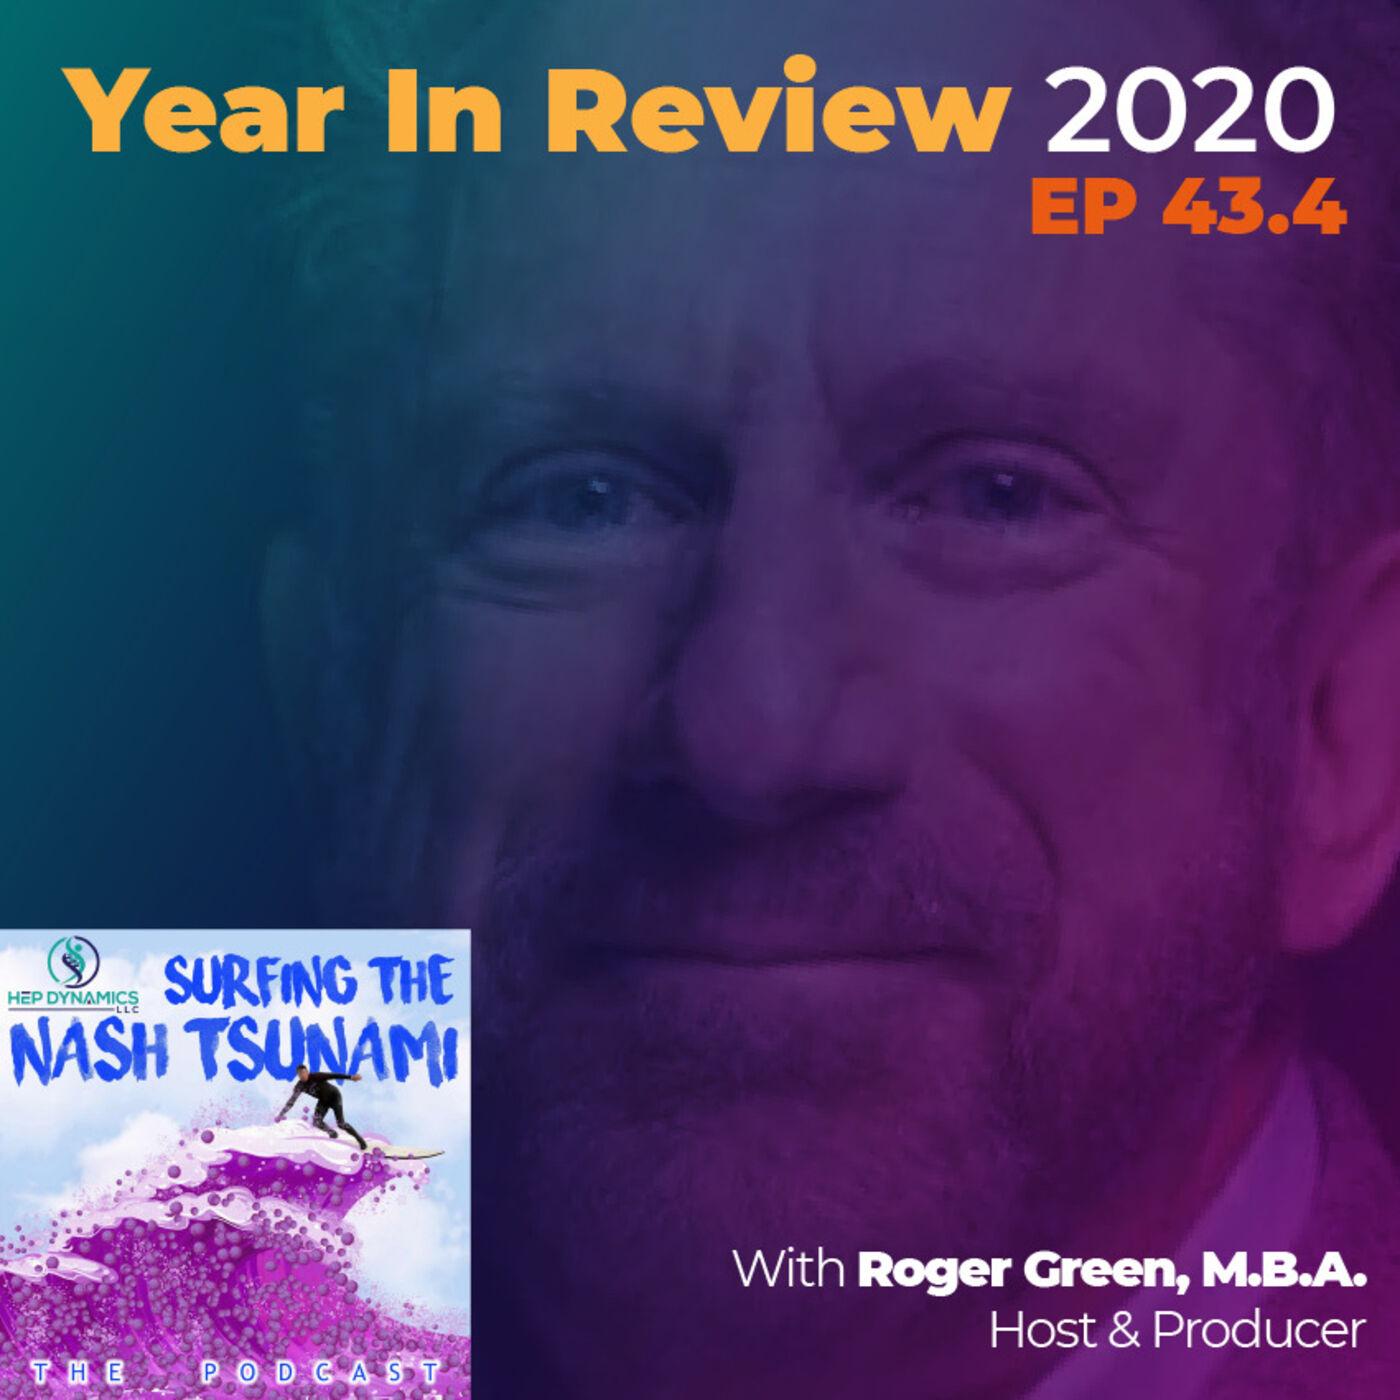 43.4 2020 Year in Review: The Law of Unintended Consequences Blesses NASH Drug Development